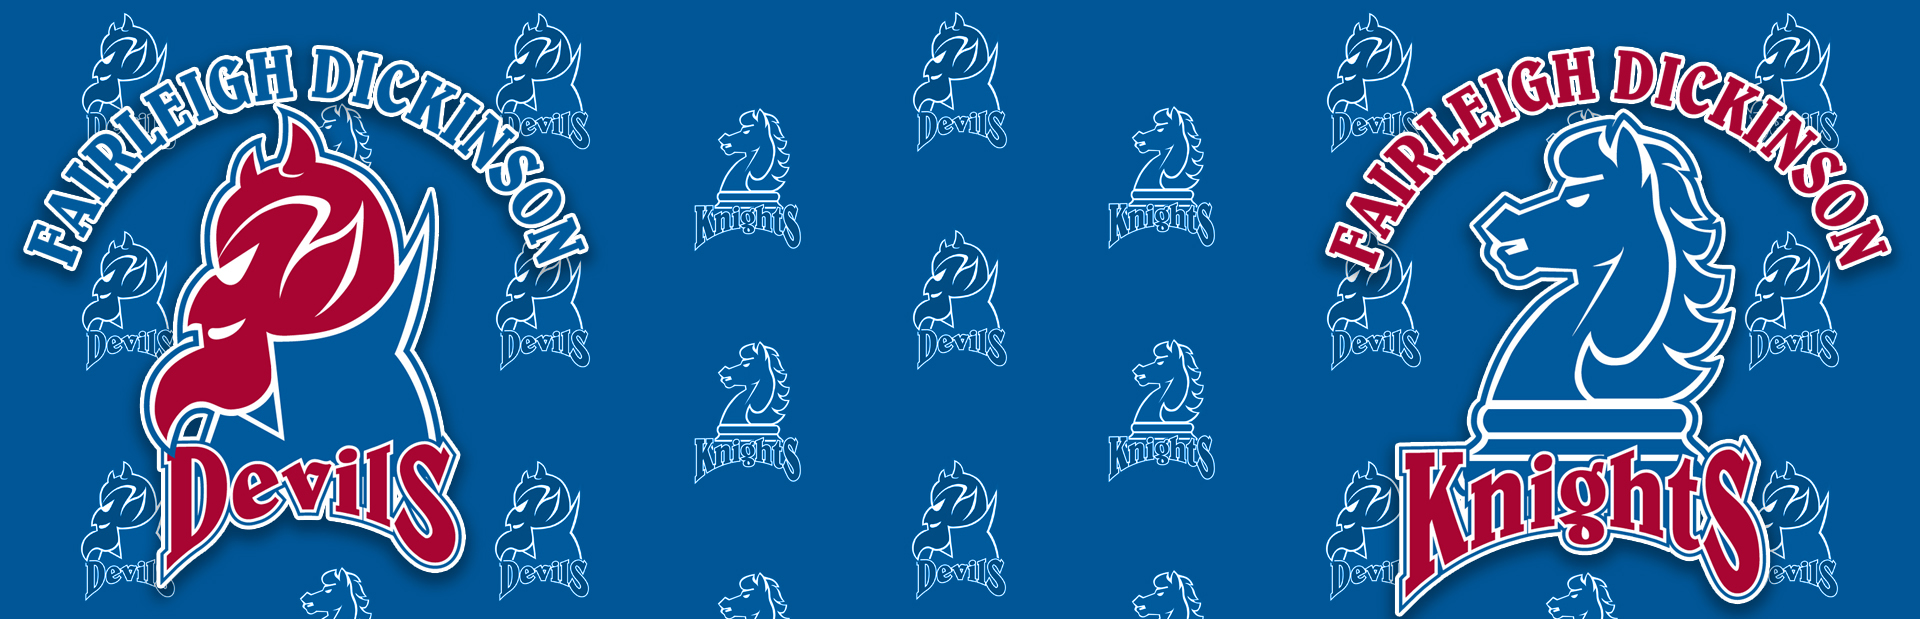 The FDU Devils logo and the FDU Knights logo. With a backdrop of smaller logos.